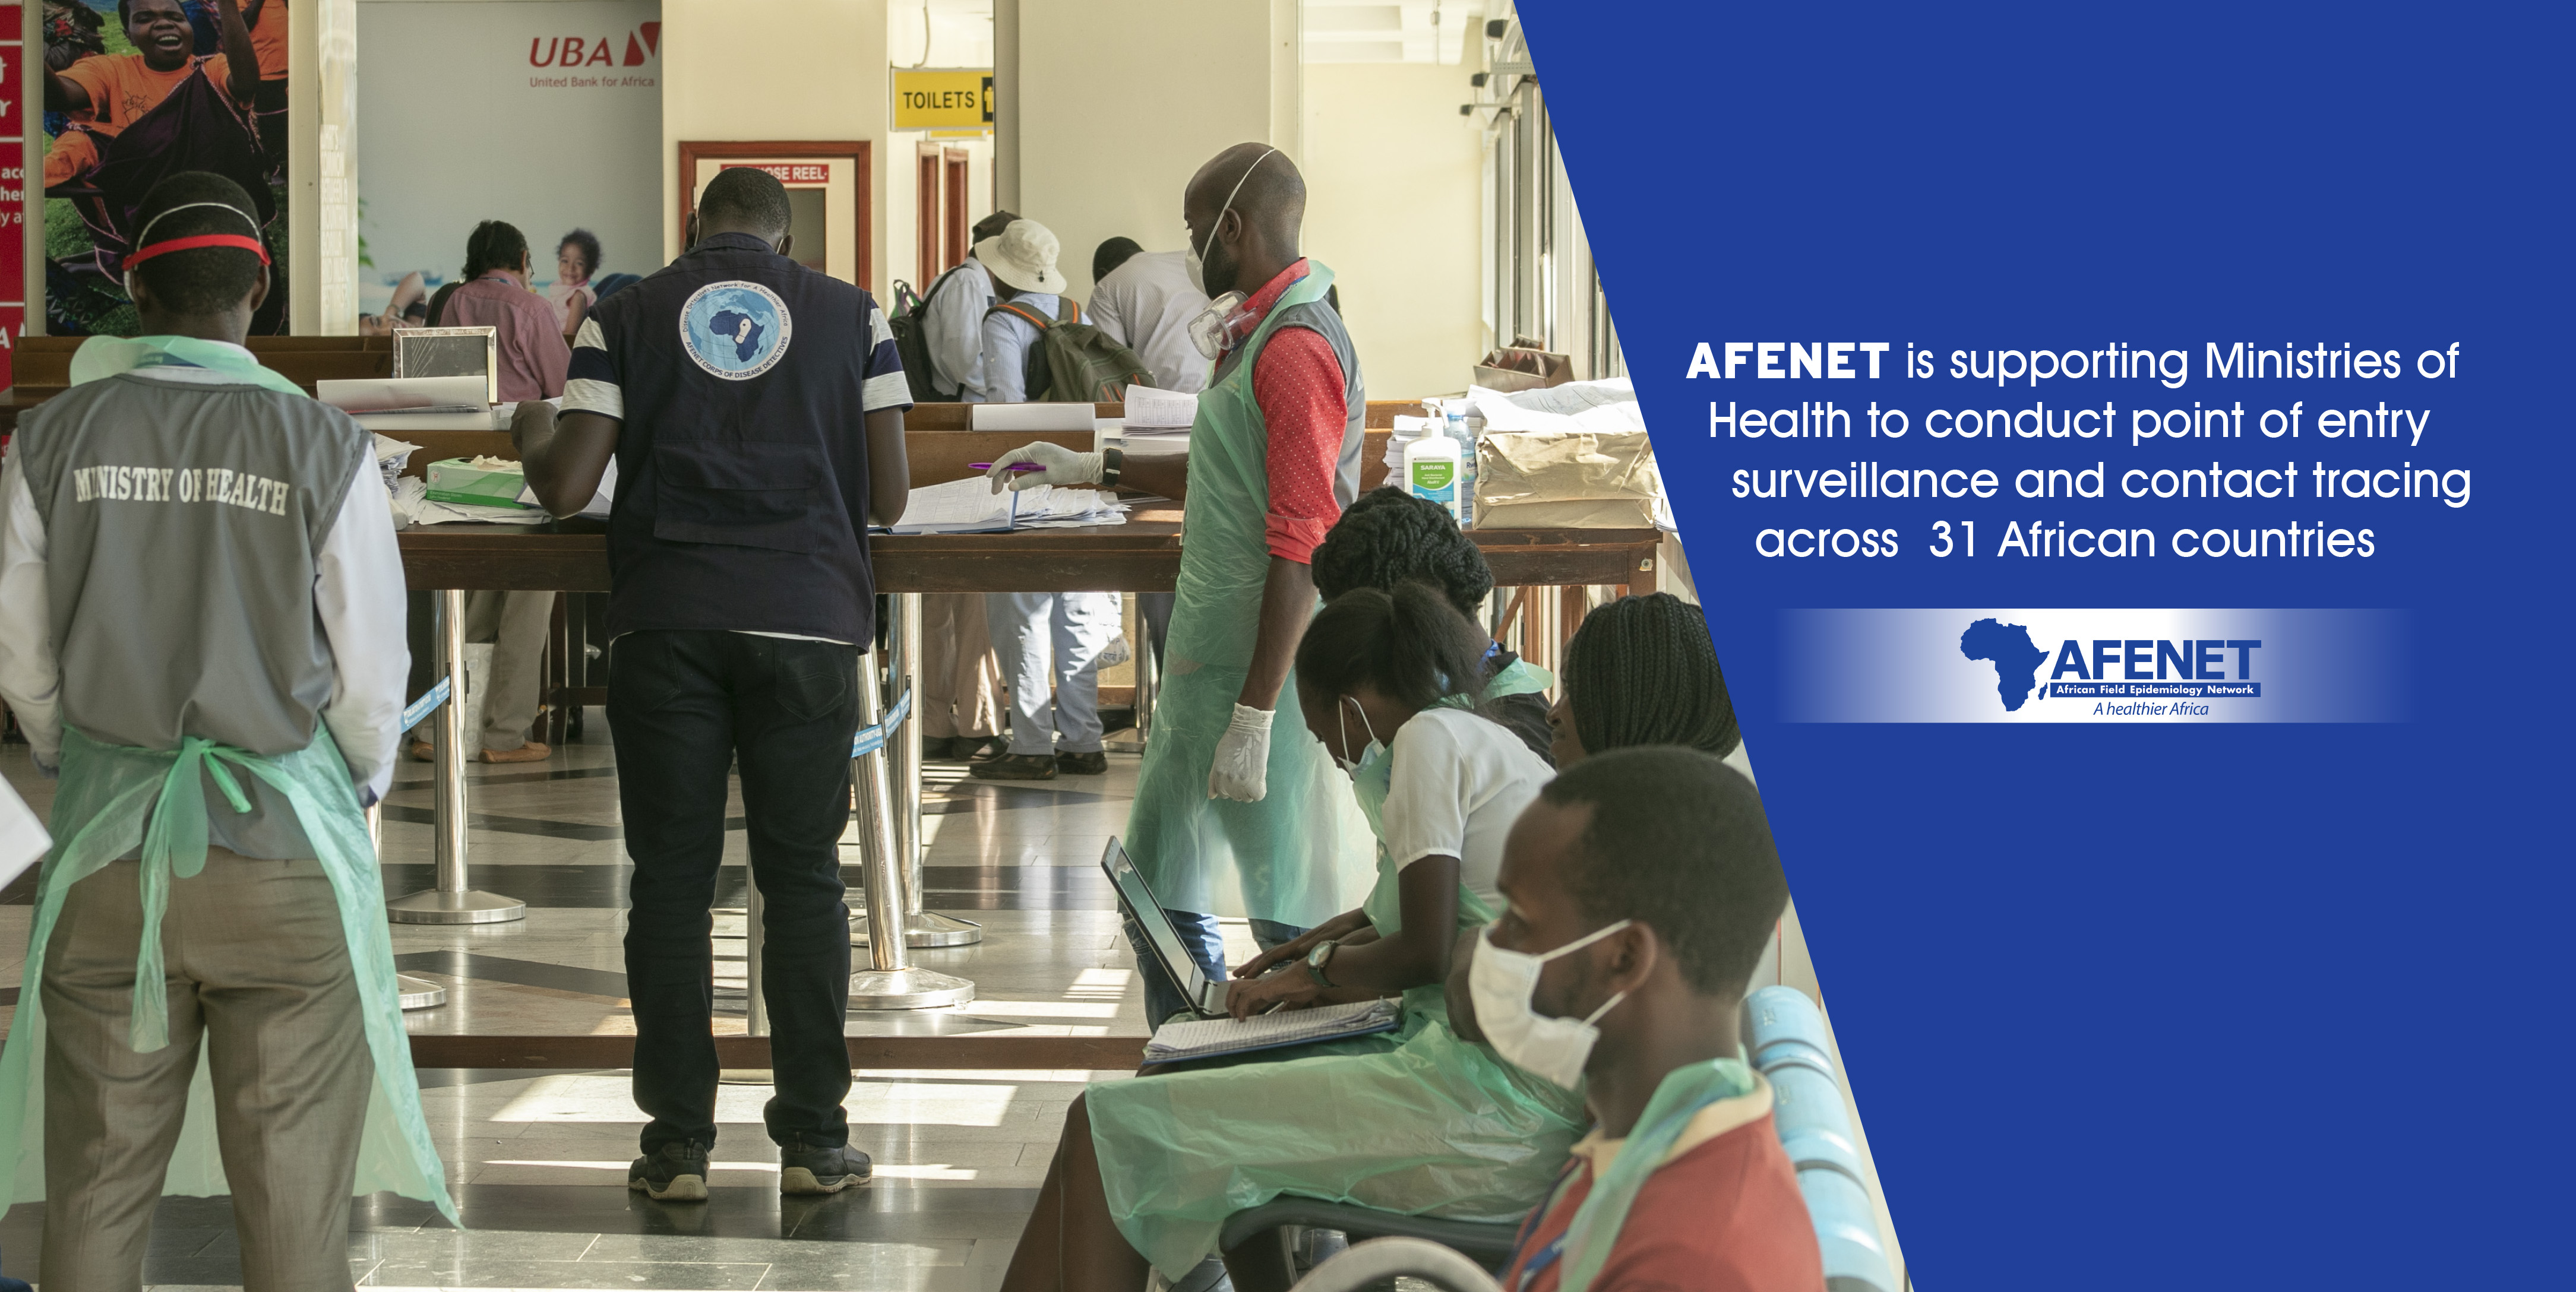 AFENET is working with Ministries of Health to boost points of entry surveillence and contact tracing across 31 African Countries